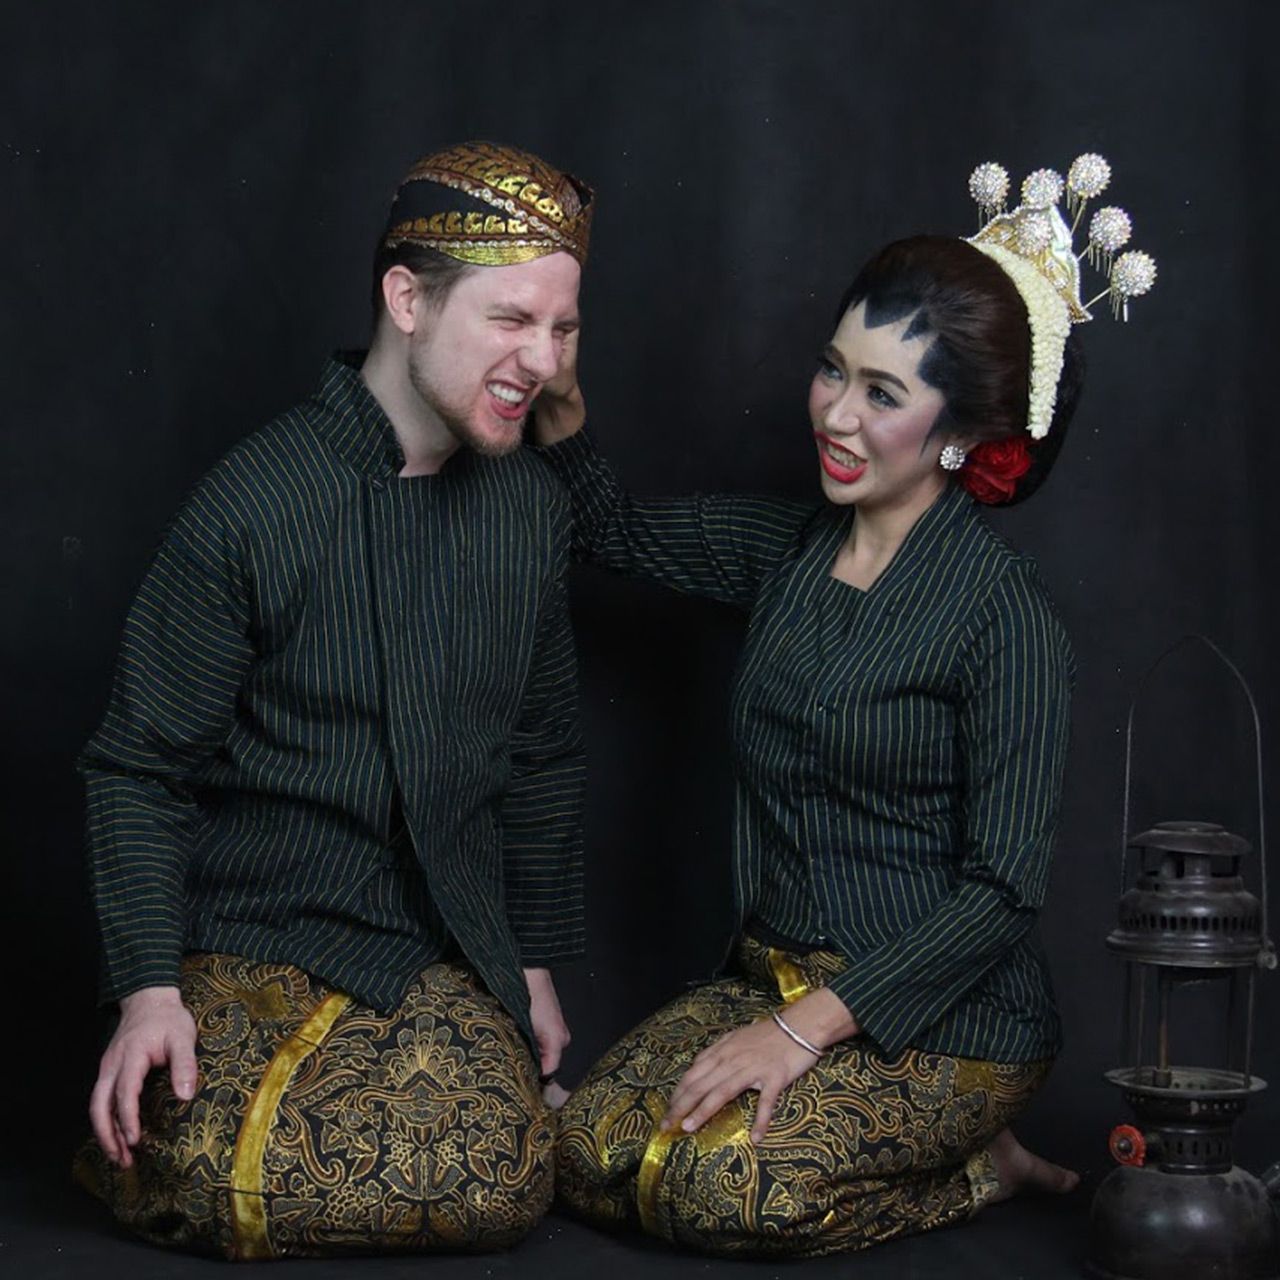 Picture of me and my wife in Javanese dress being silly.